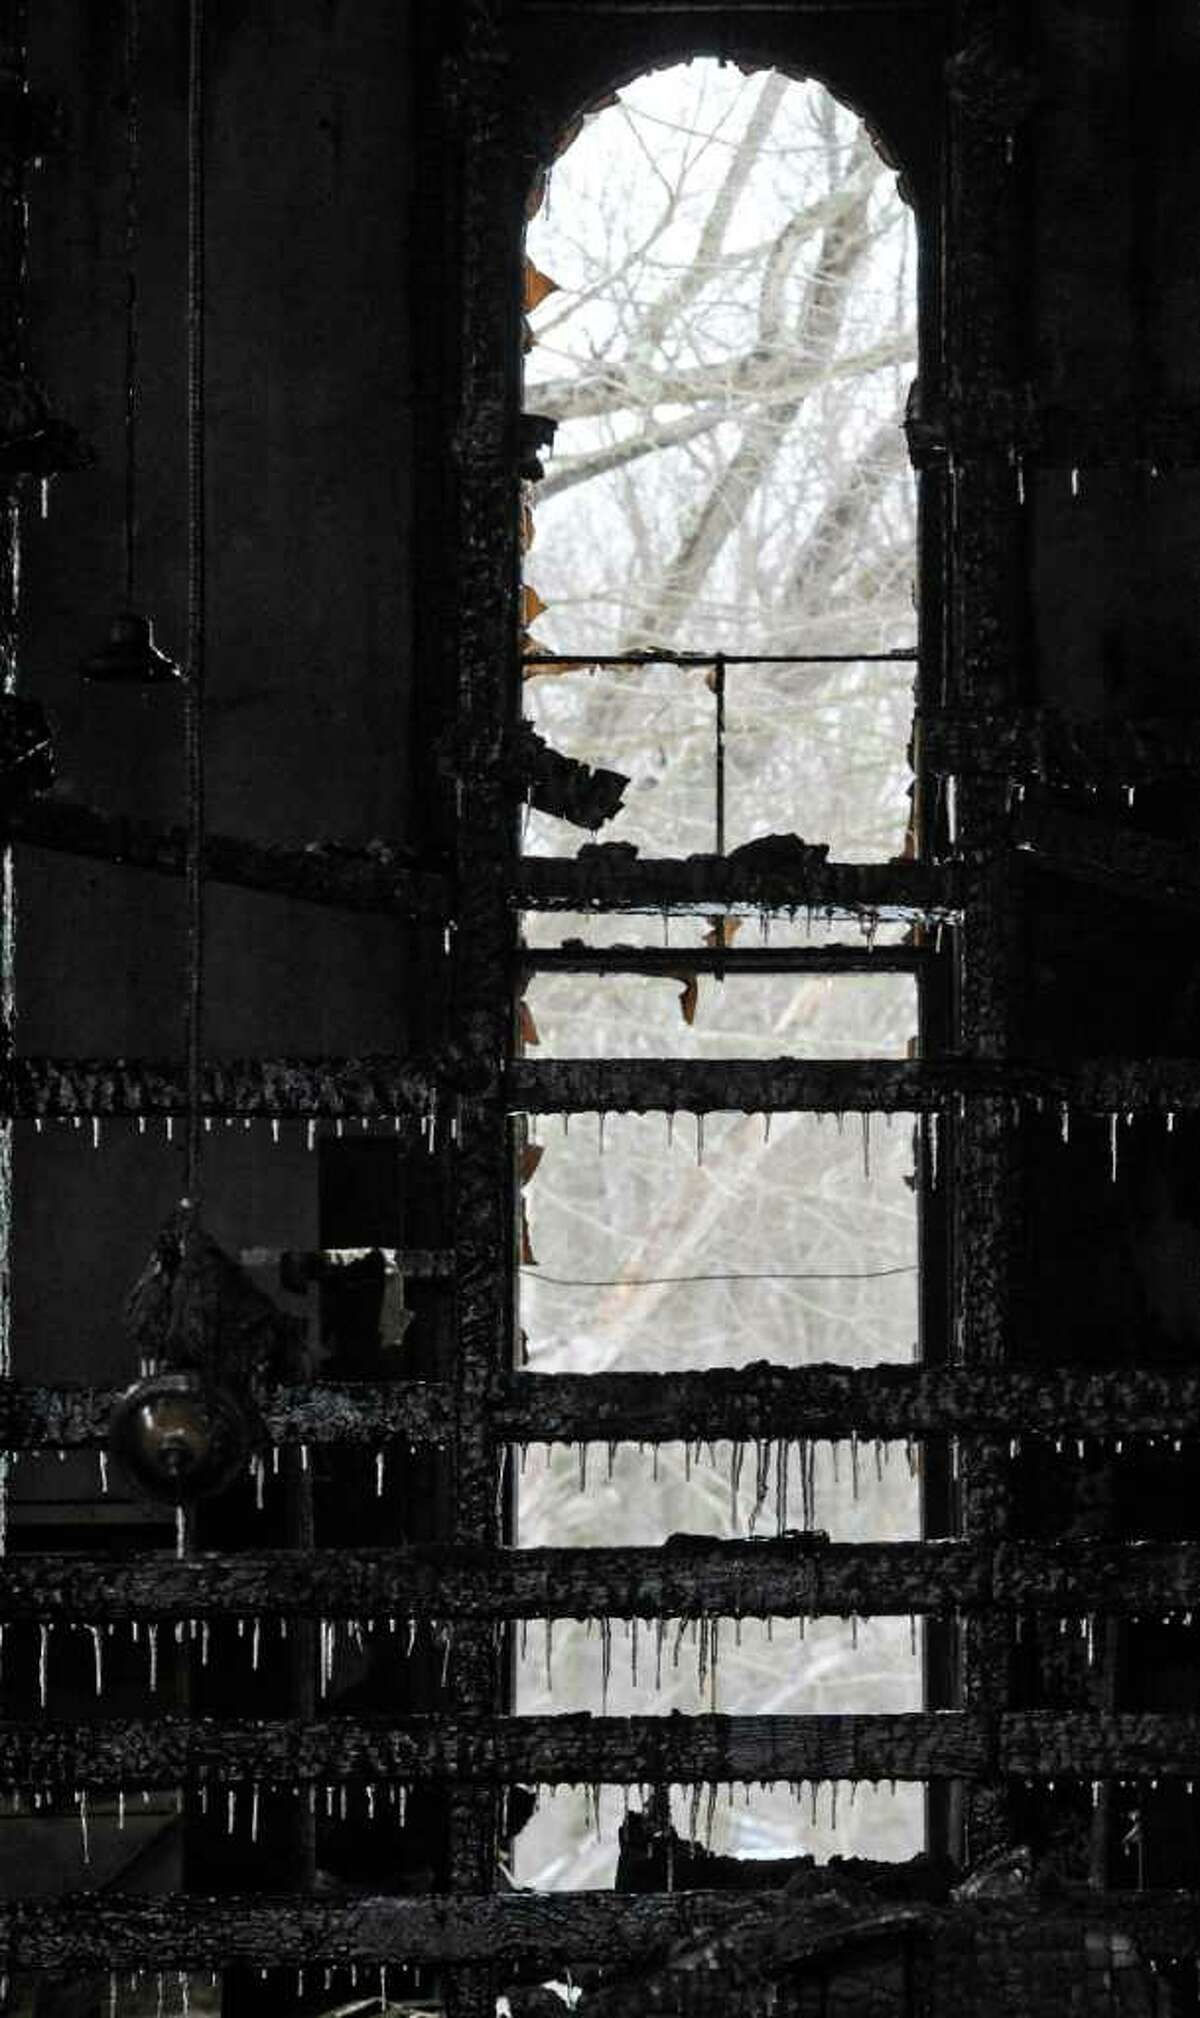 Fire gutted the United Methodist Church in Brainard on Wednesday, Dec. 22, 2010. (Skip Dickstein / Times Union)